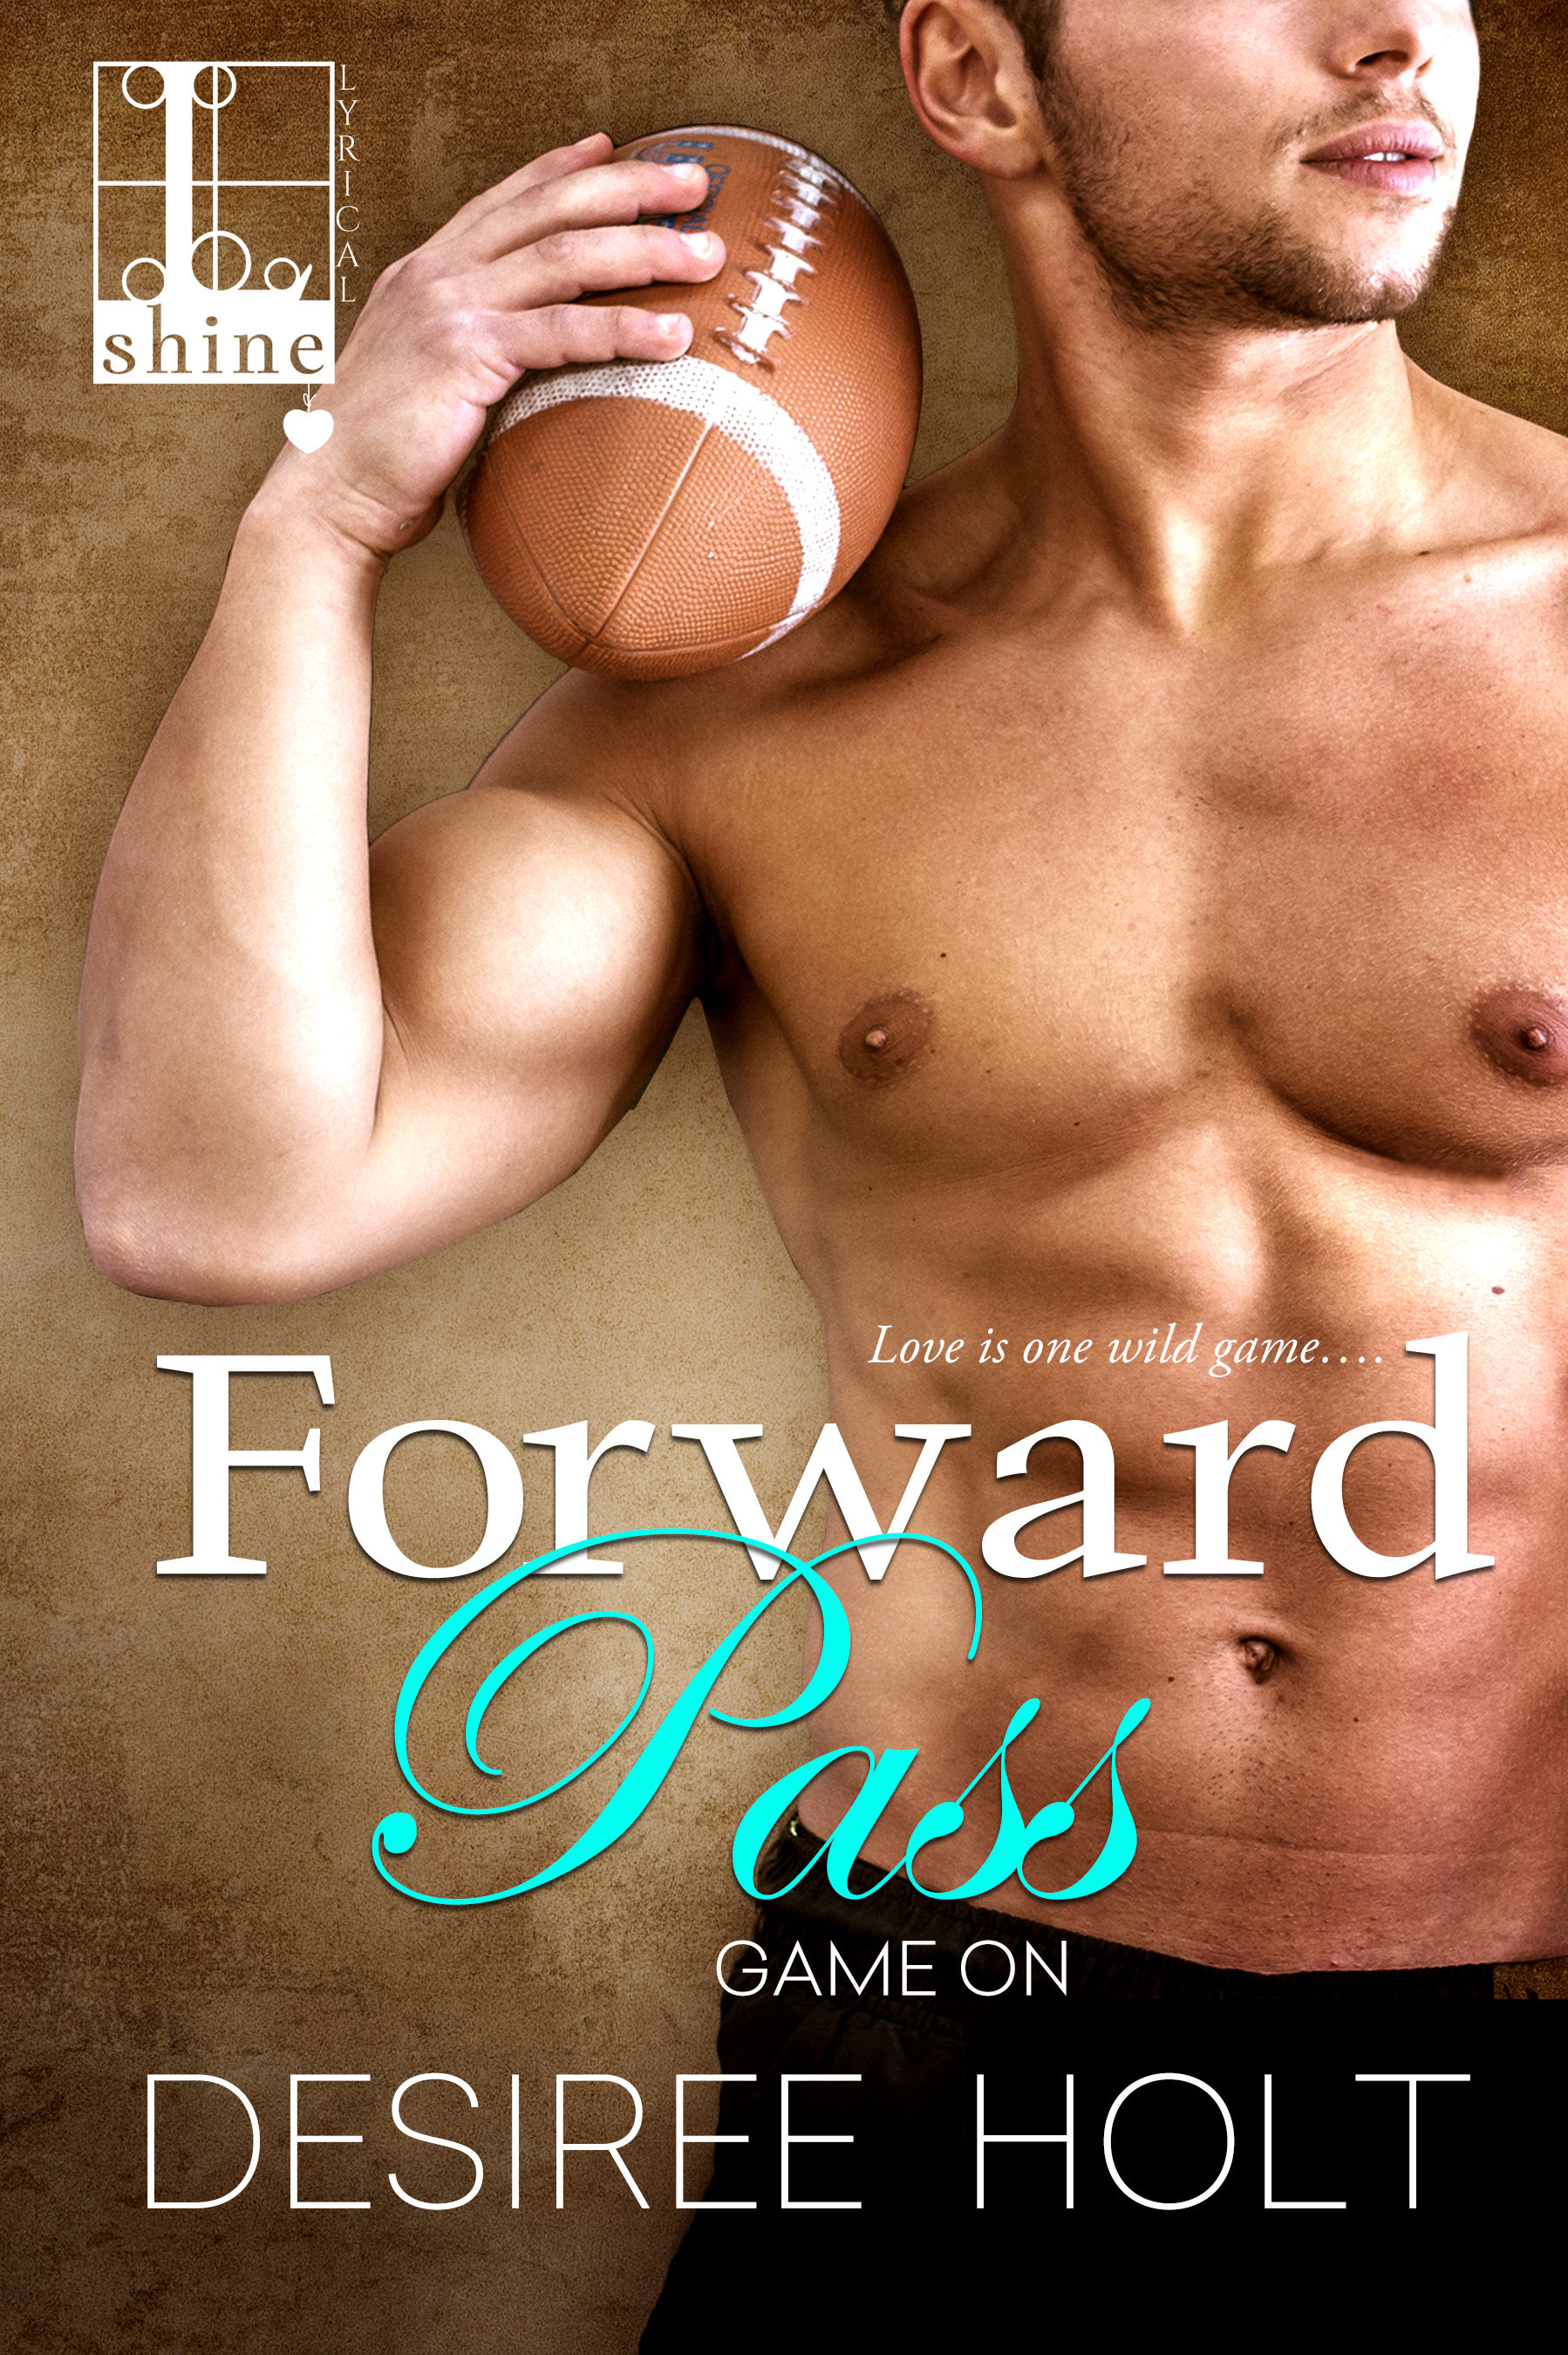 Last chance to get a football hero for 99cents!